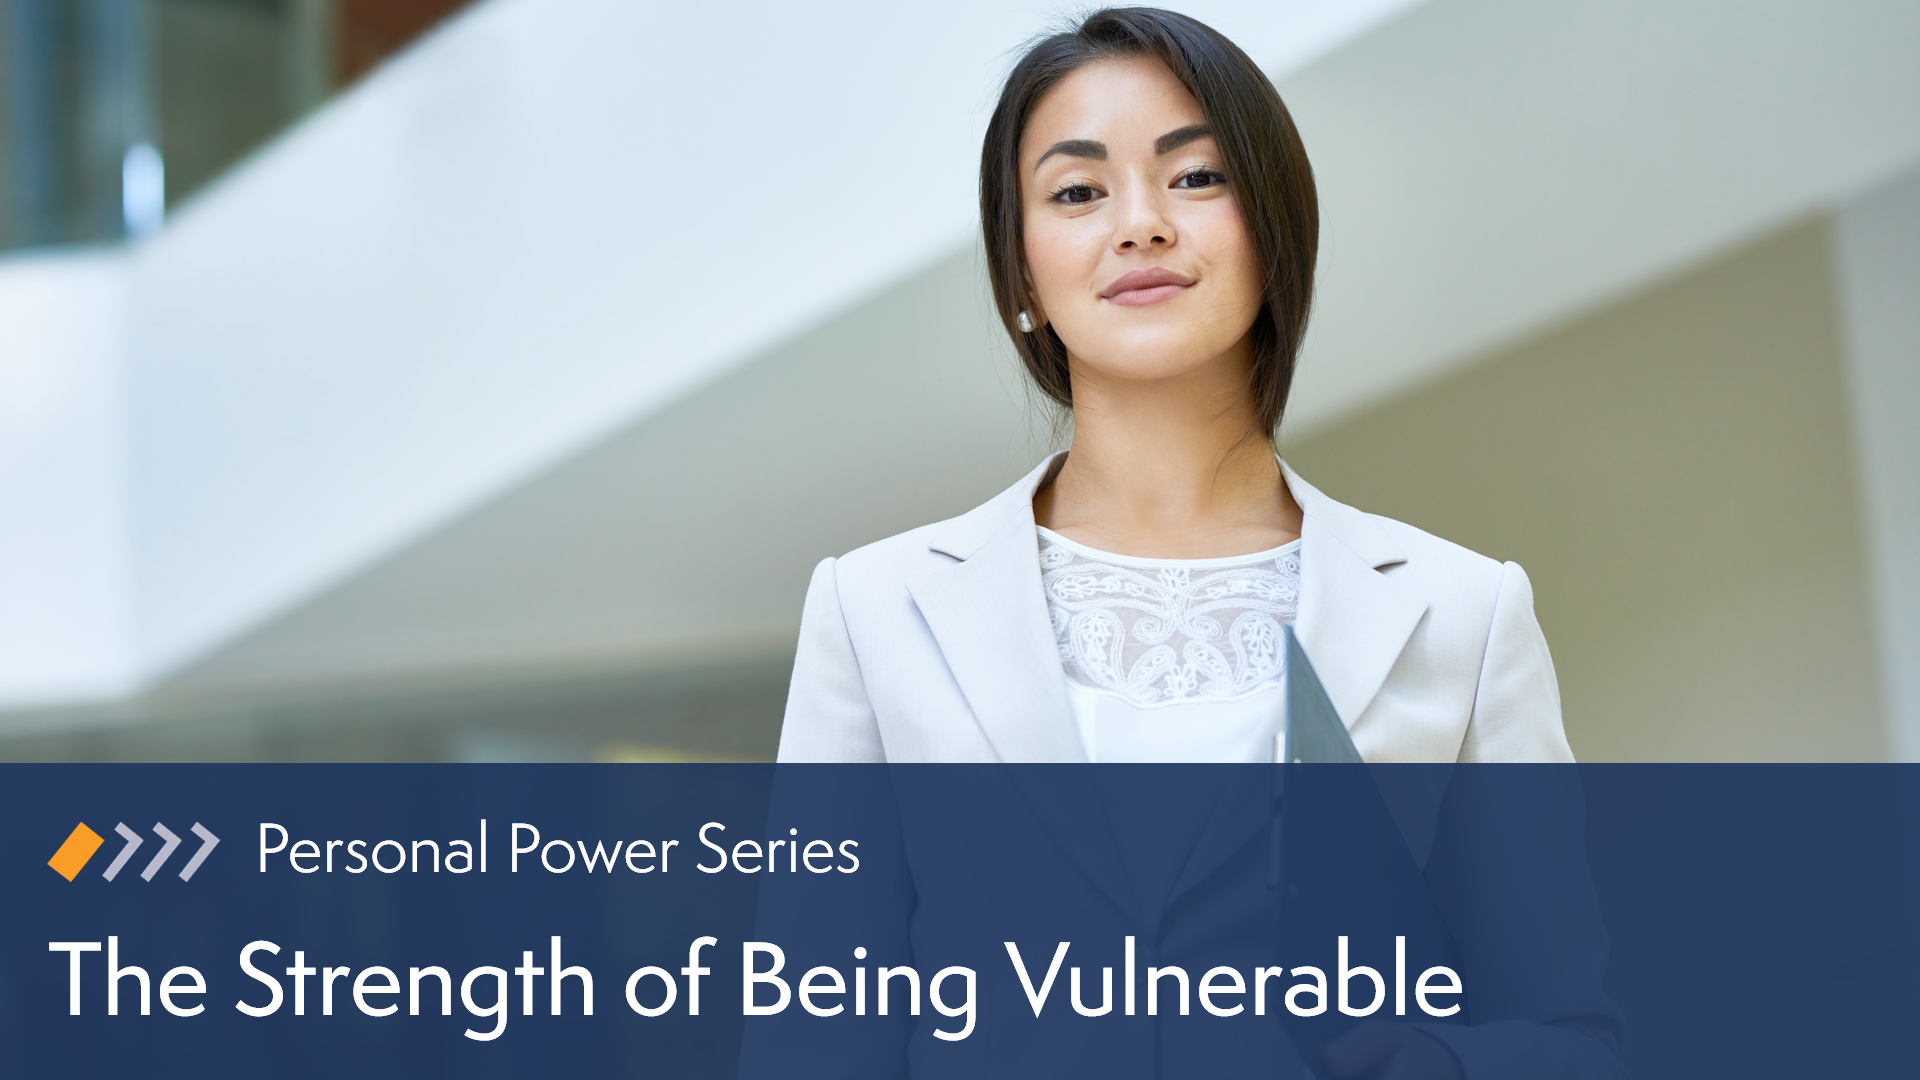 Personal Power: The Strength of Being Vulnerable